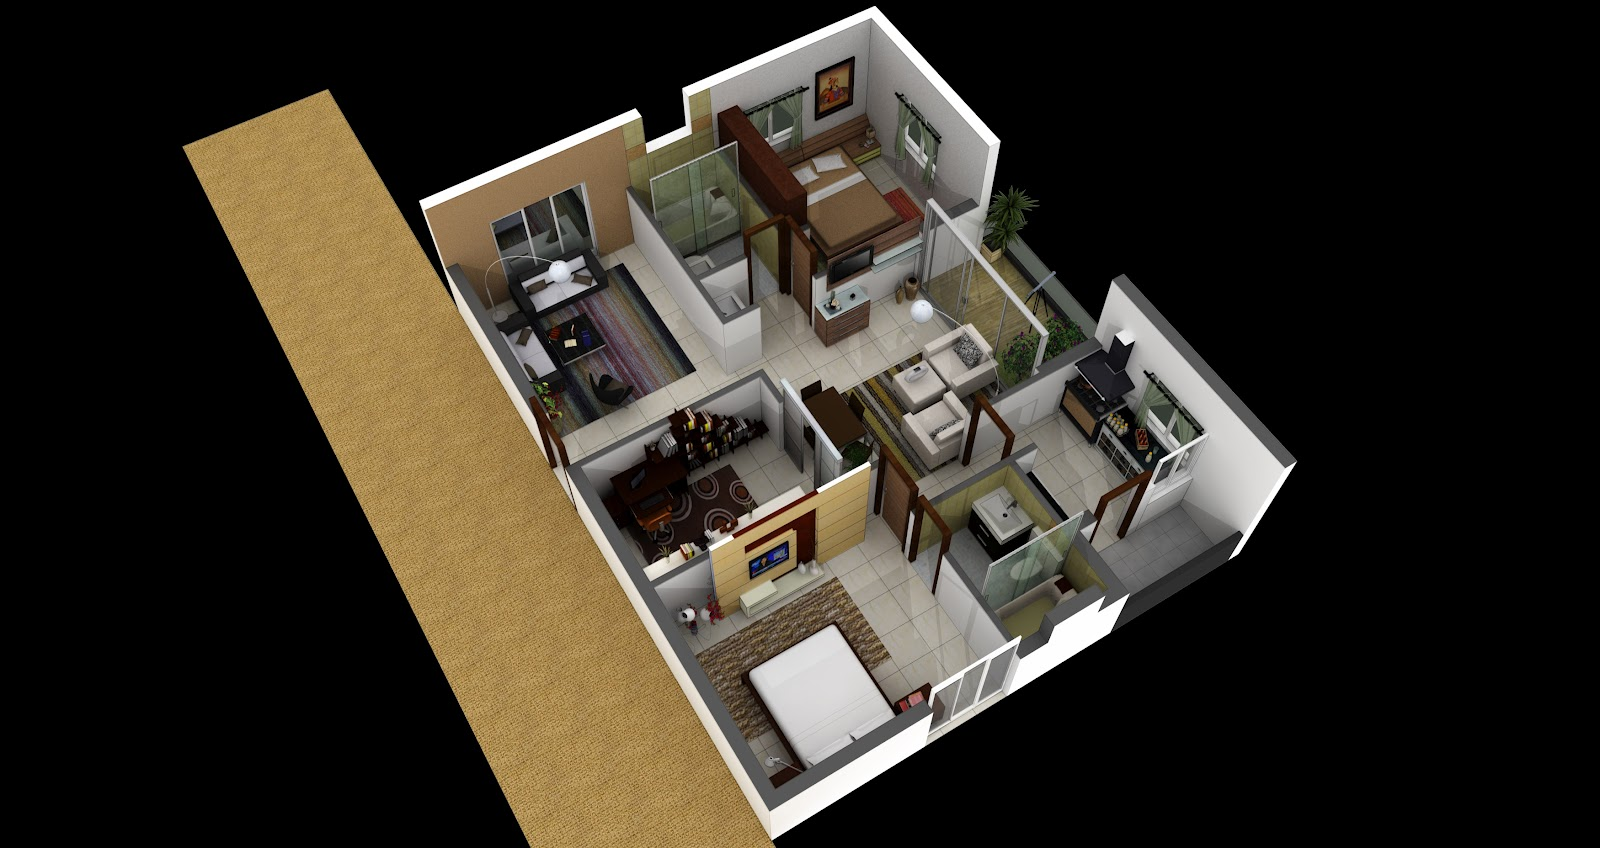 Isometric 3D Floor Plan